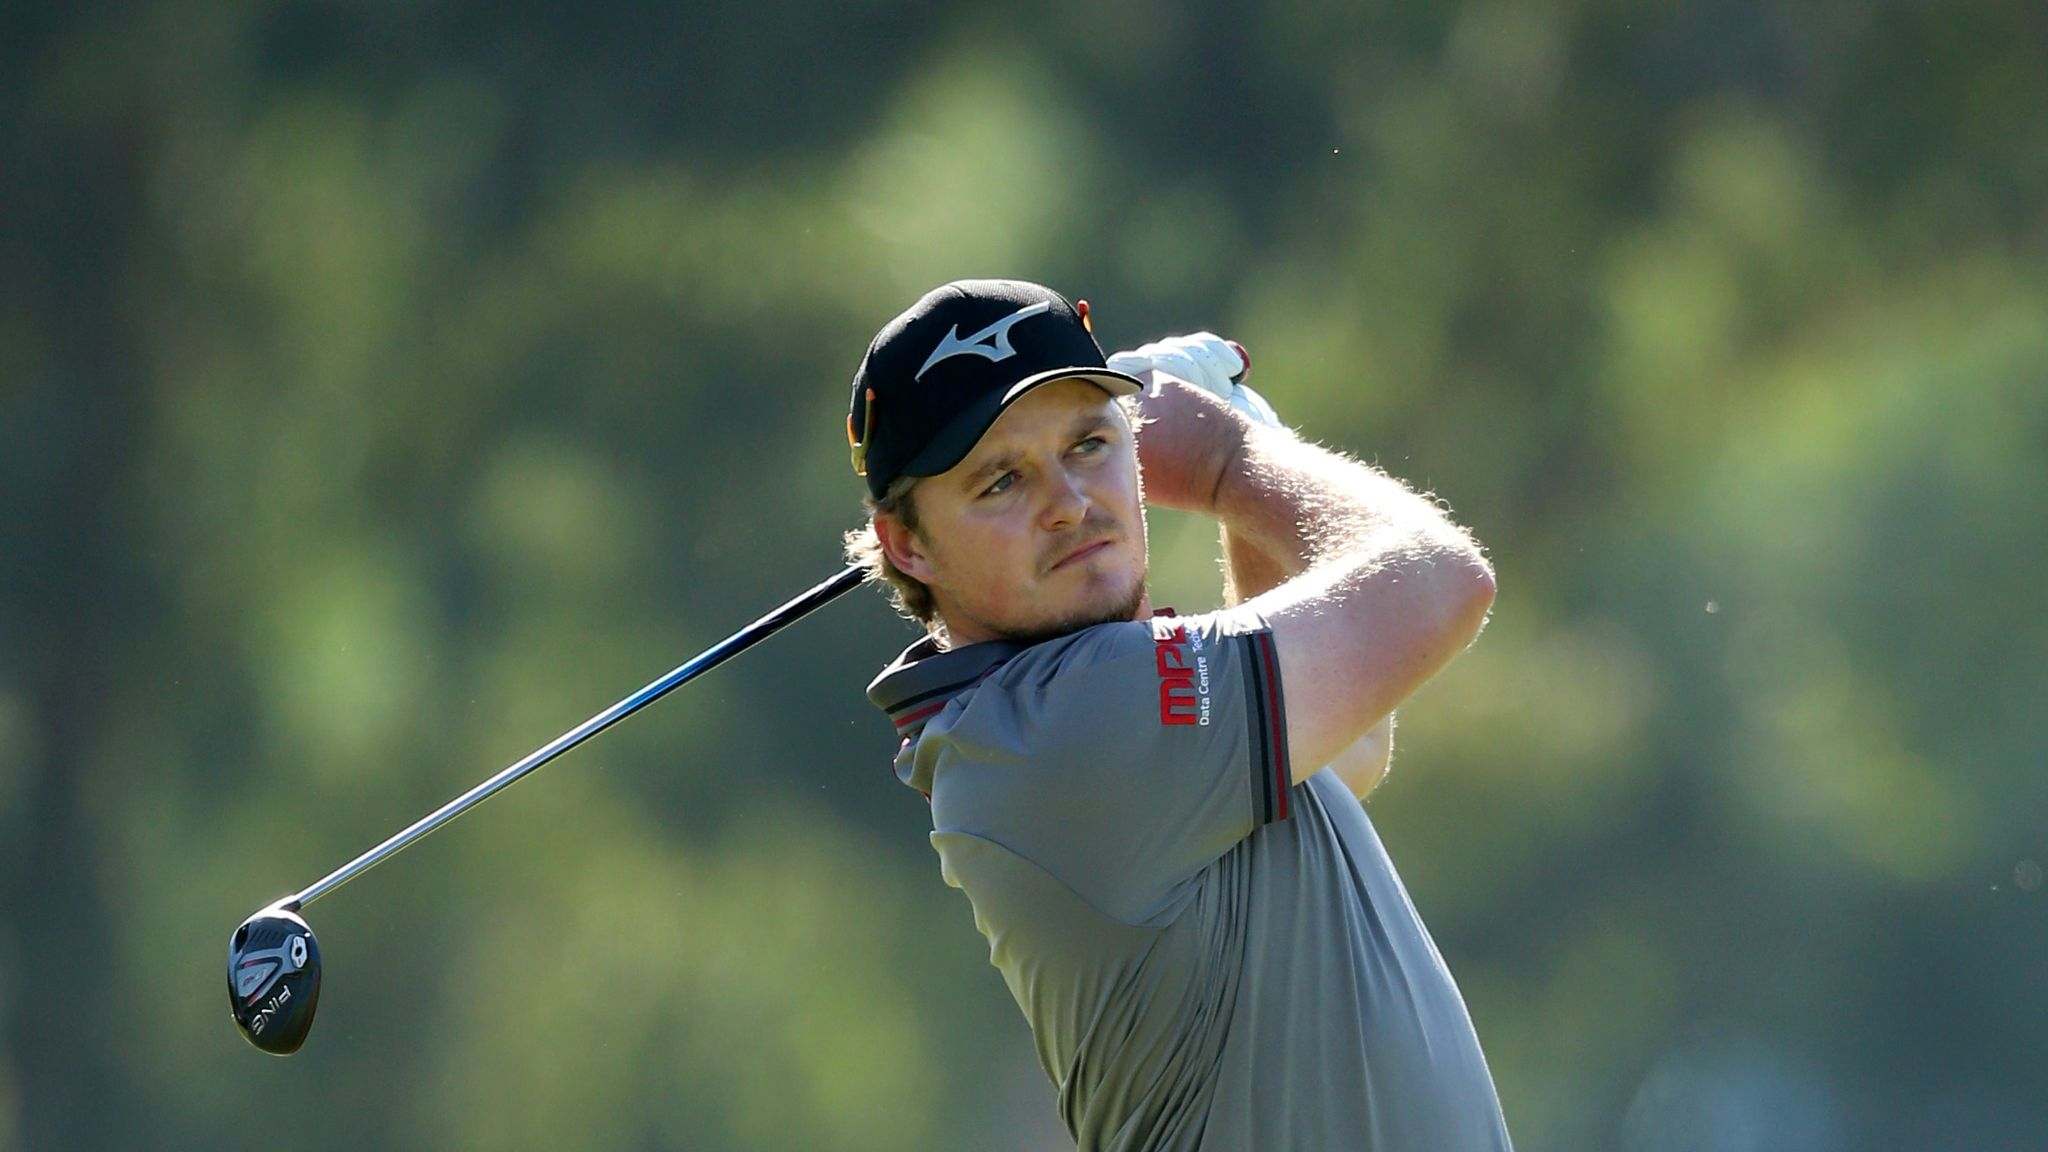 Turkish Airlines Open: Eddie Pepperell disqualified after running out of balls